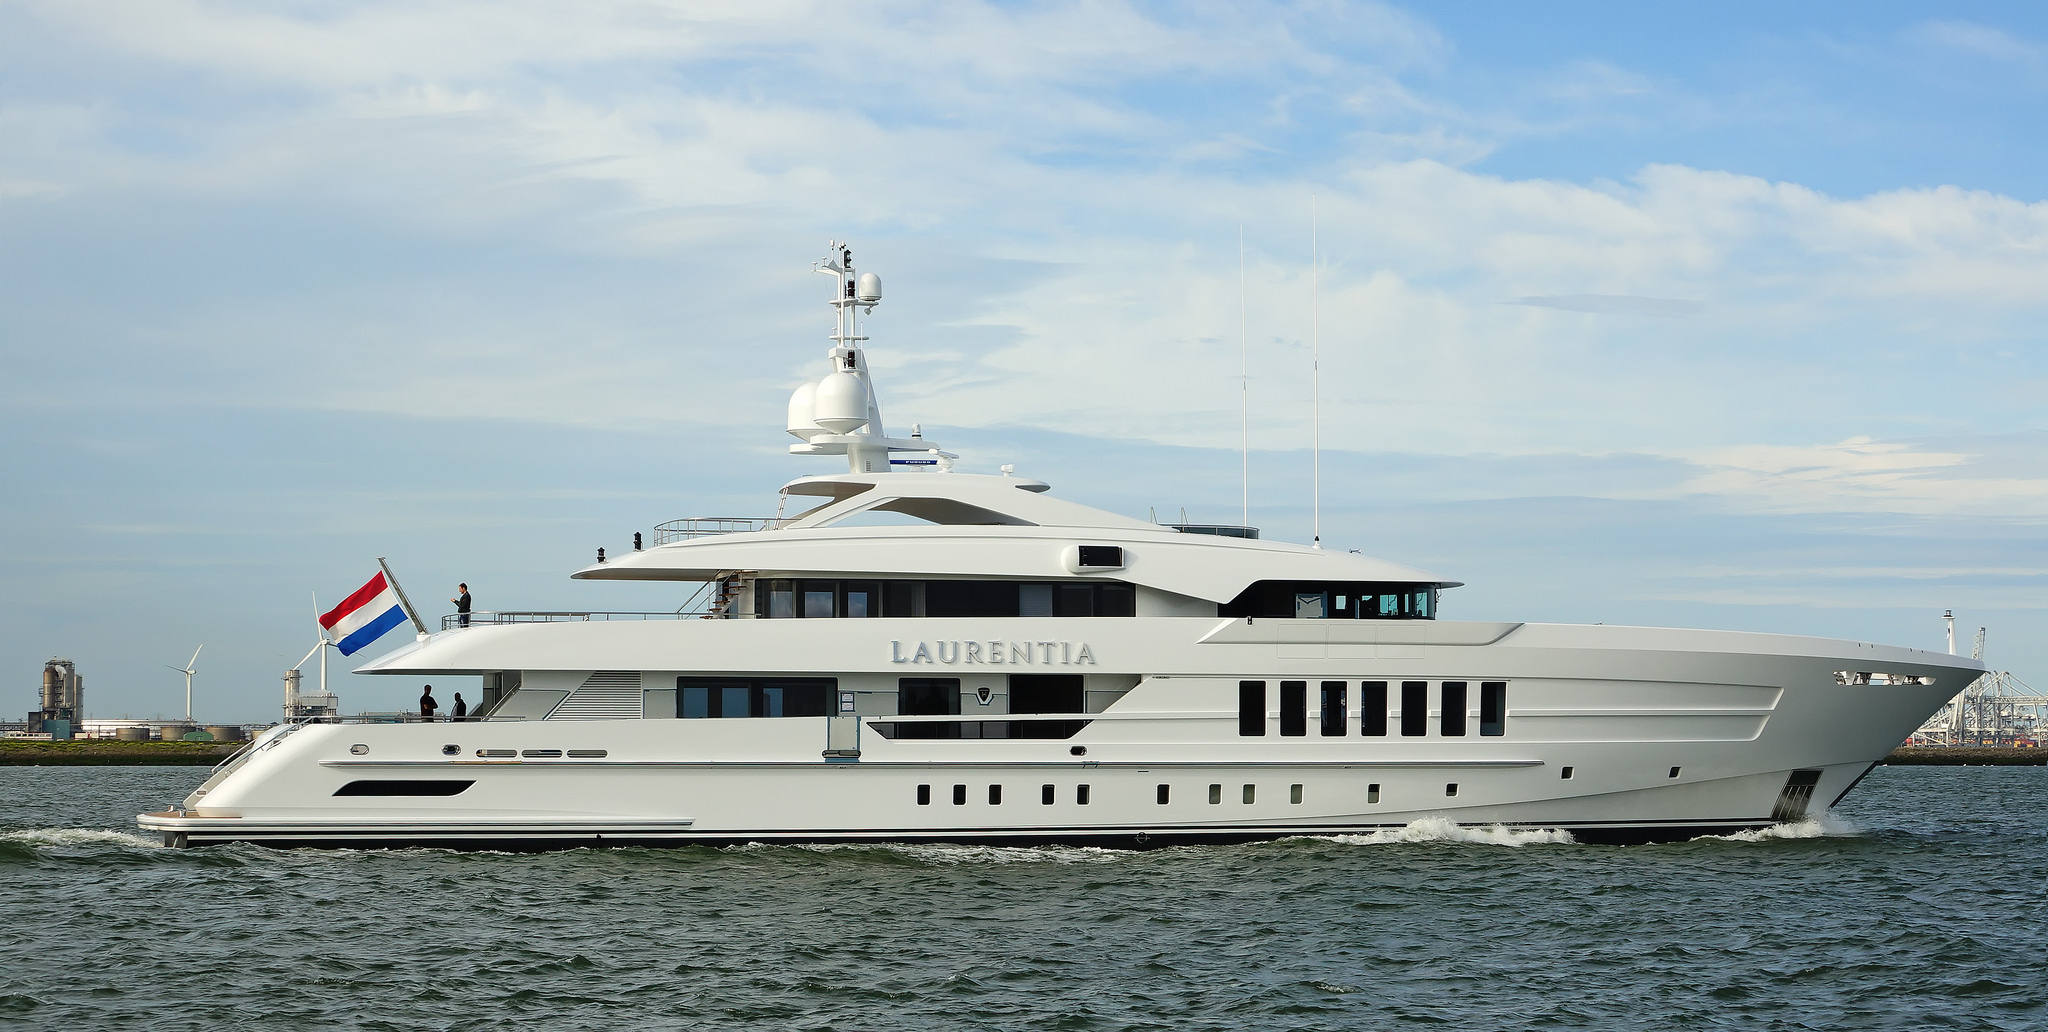 Superyacht LAURENTIA spotted in Holland returning from her sea trials. Image credit - Kees Torn